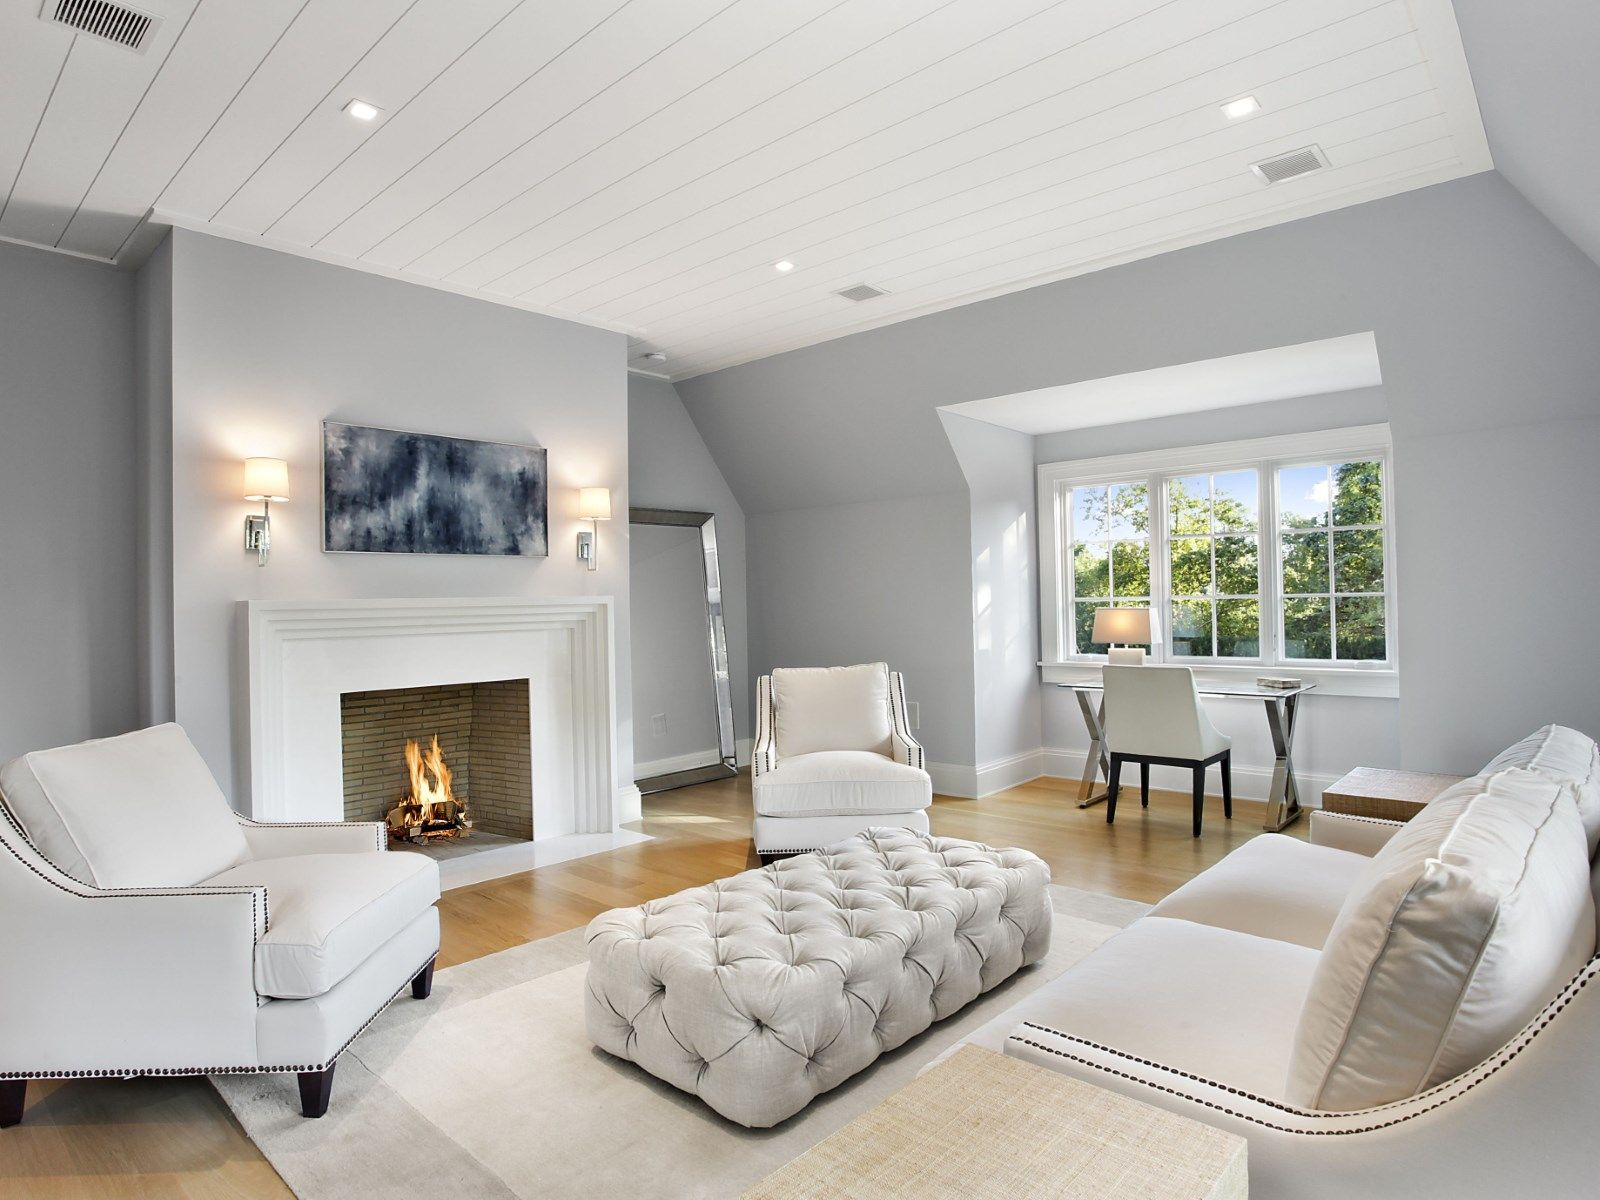 2019 year for lady- Room Sitting with fireplace